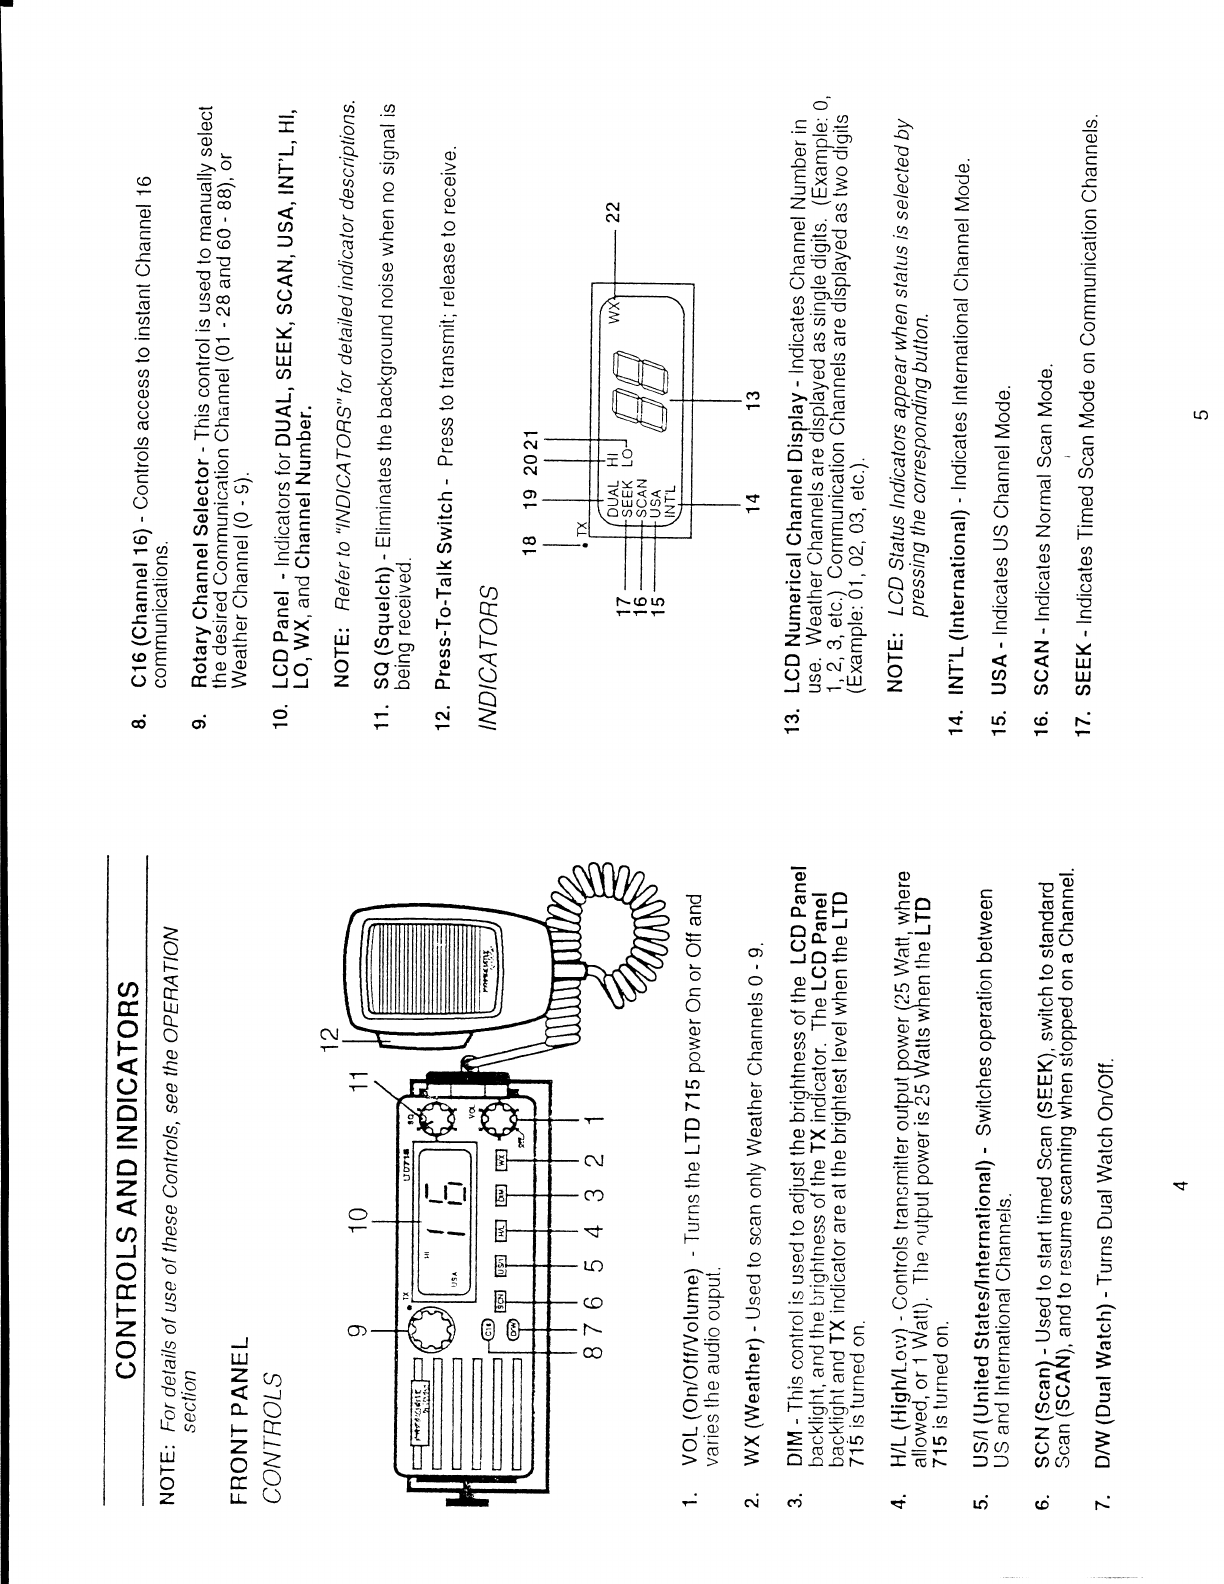 Page 4 of Uniden Two-Way Radio LTD 715 User Guide